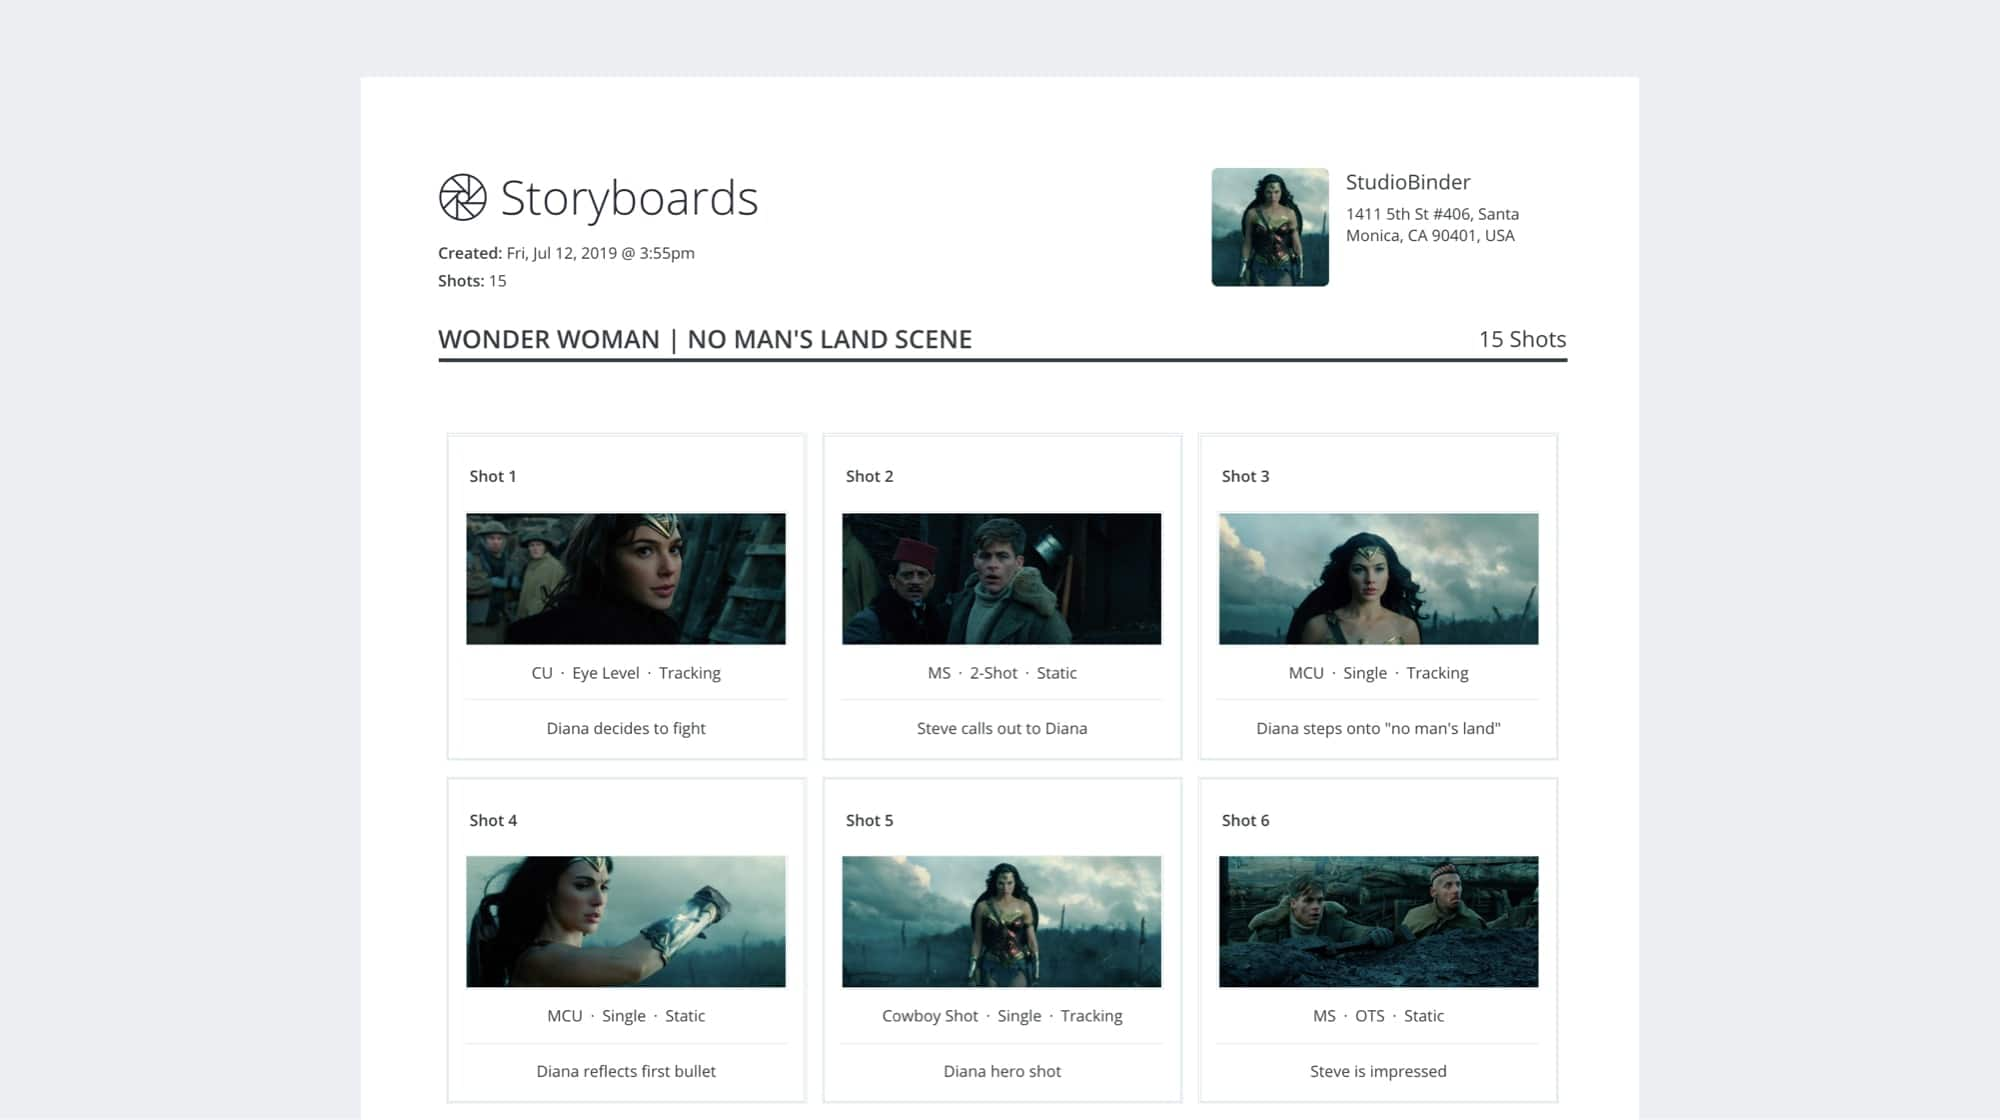 Free Storyboard Creator App - Print and Share Storyboard - StudioBinder Storyboard Software